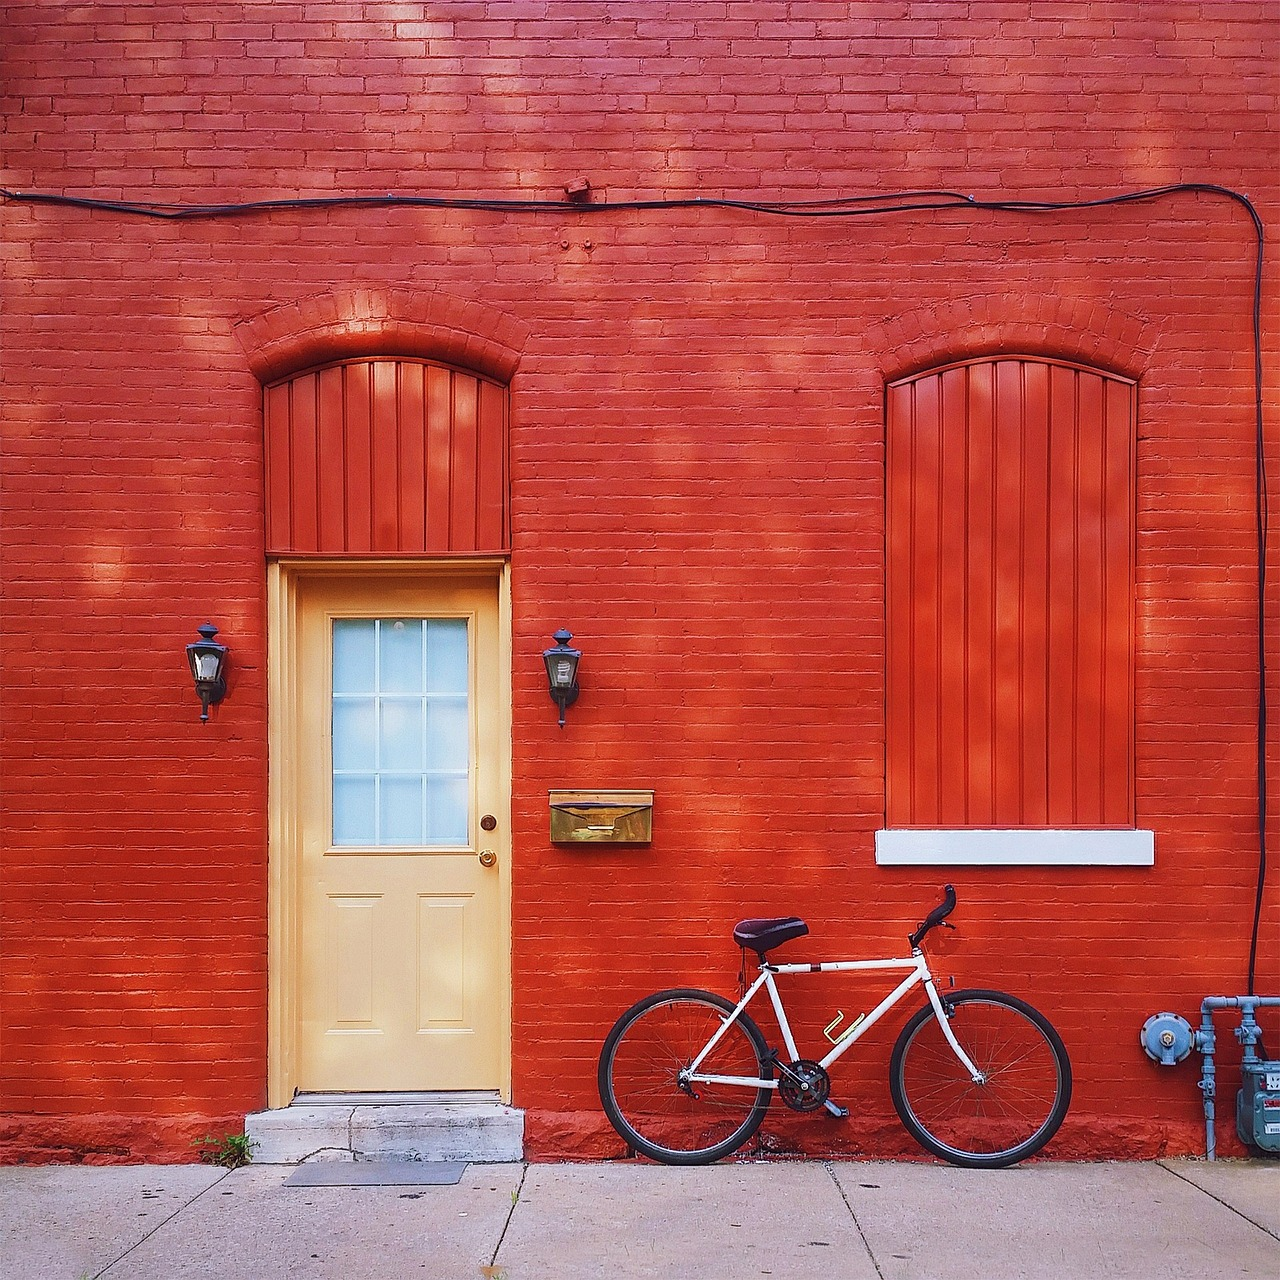 Bike against brick wall.jpg